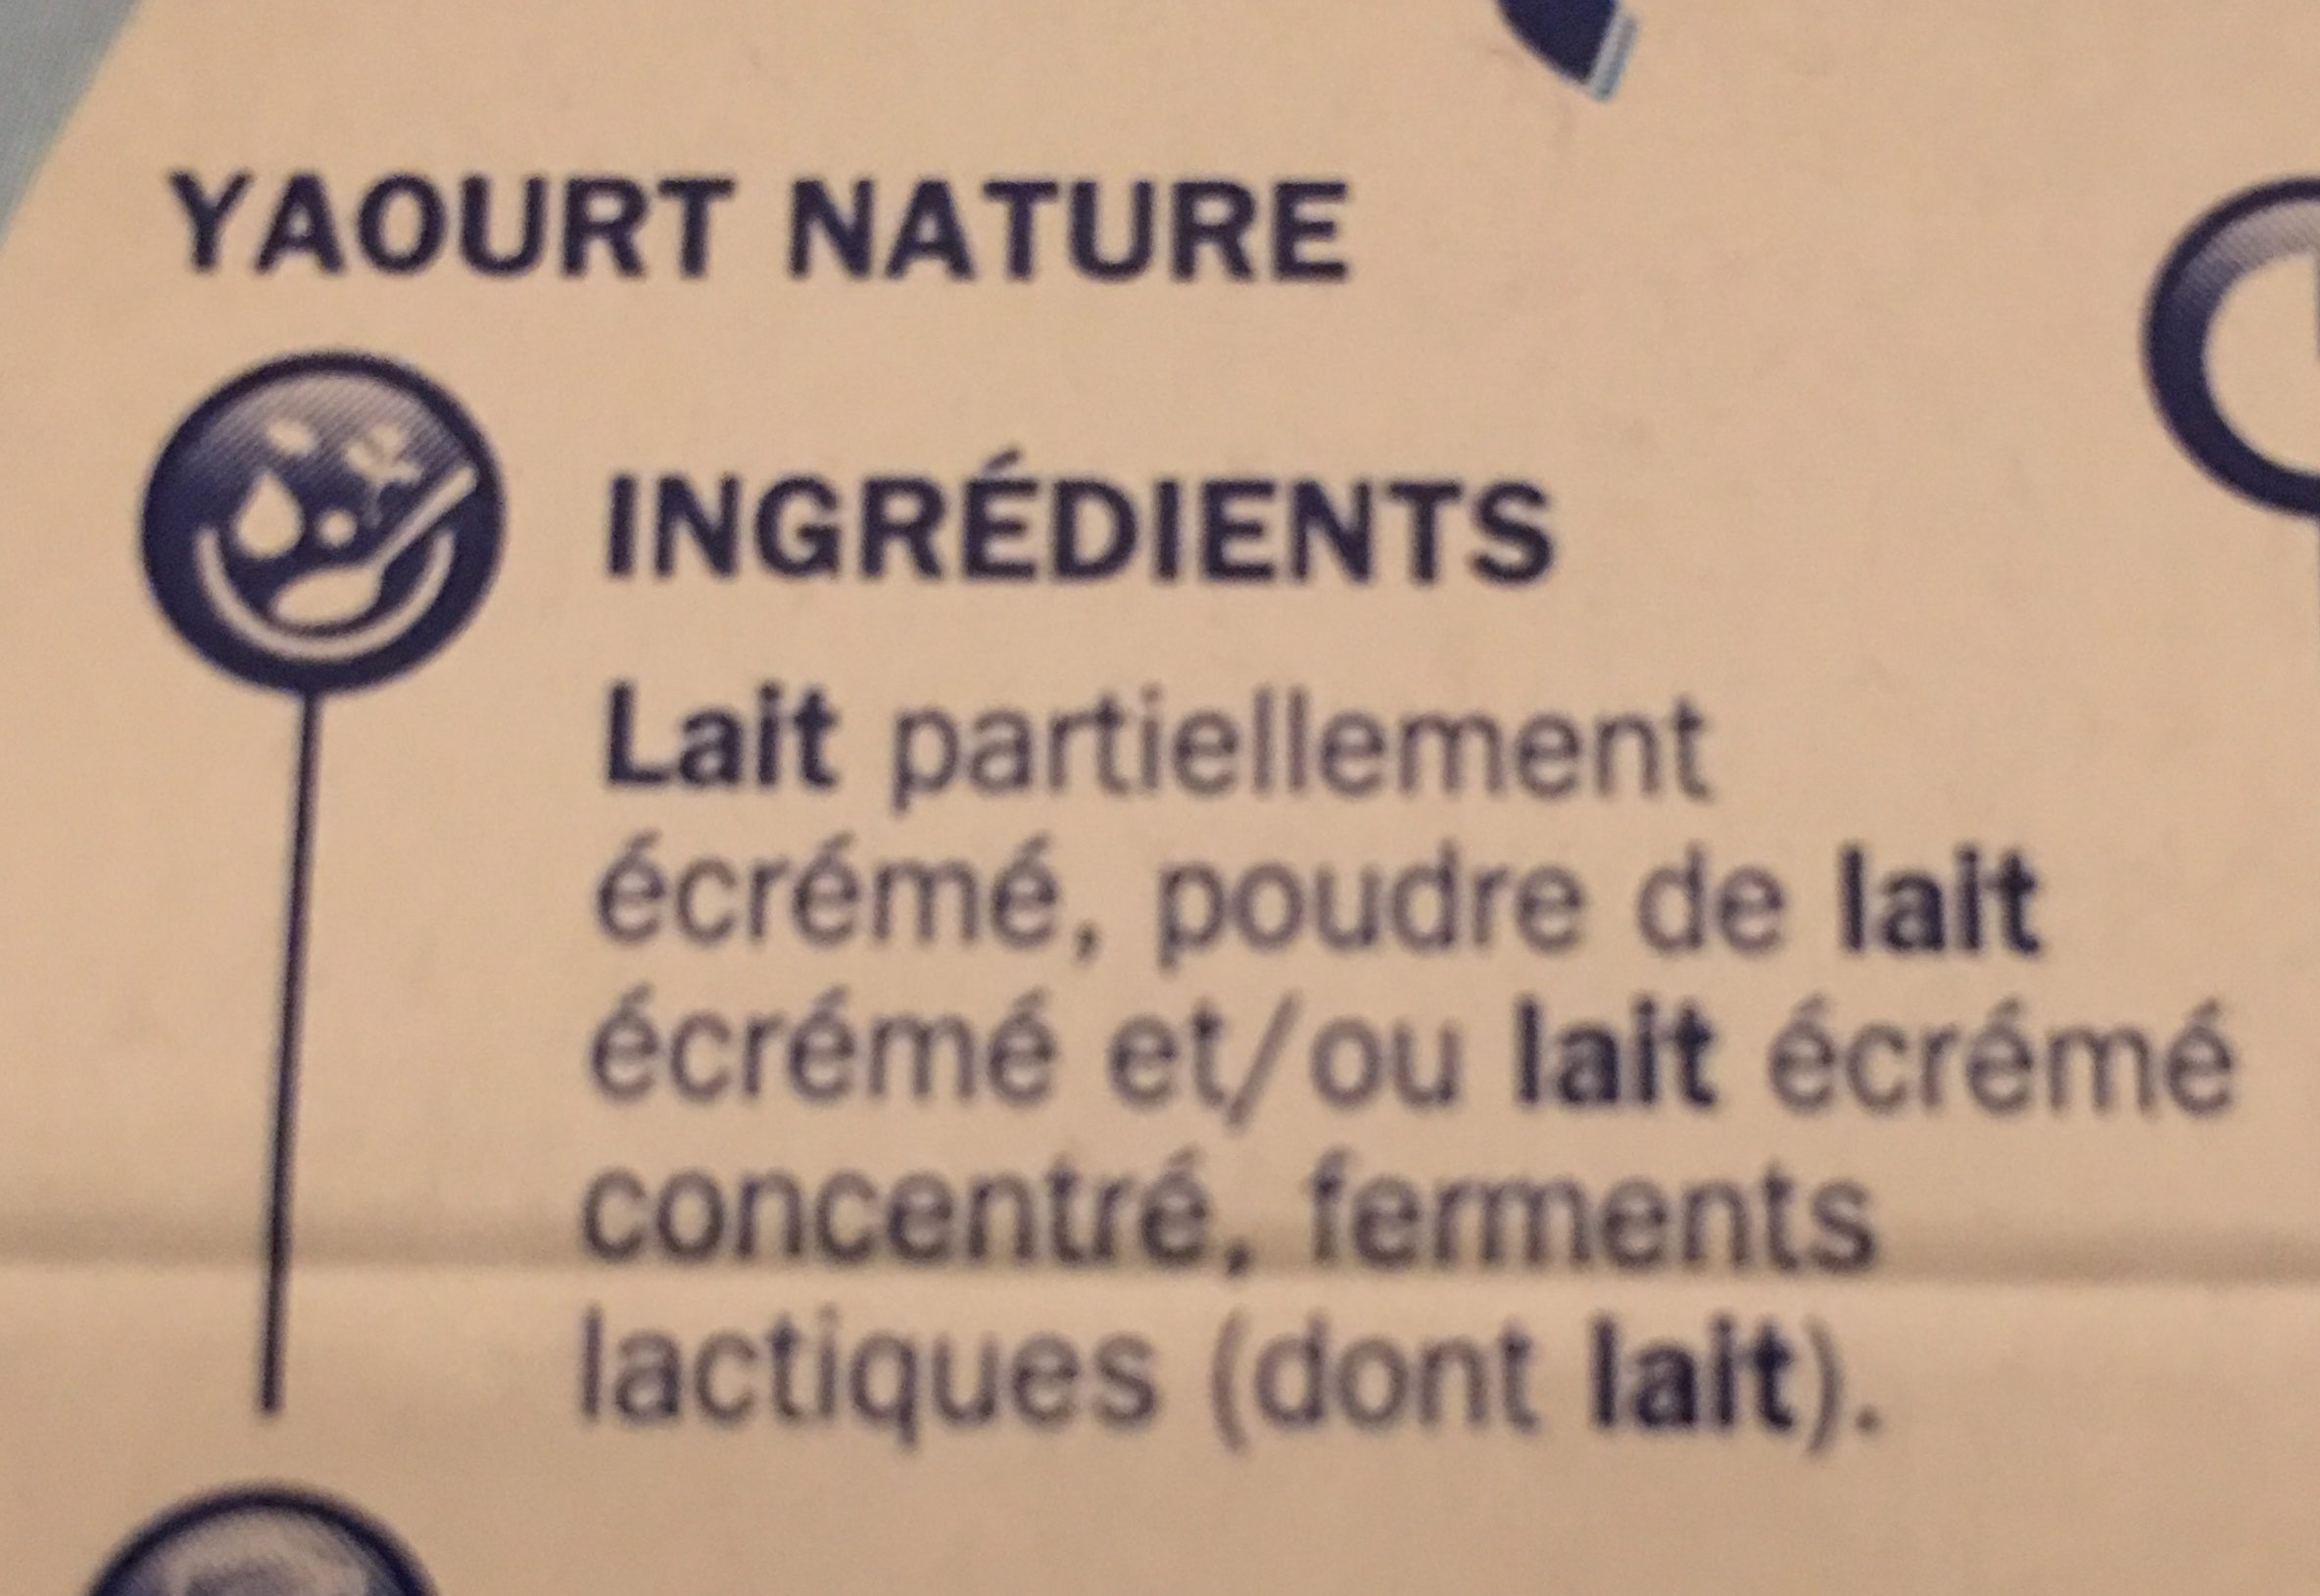 Yaourts natures - Ingredients